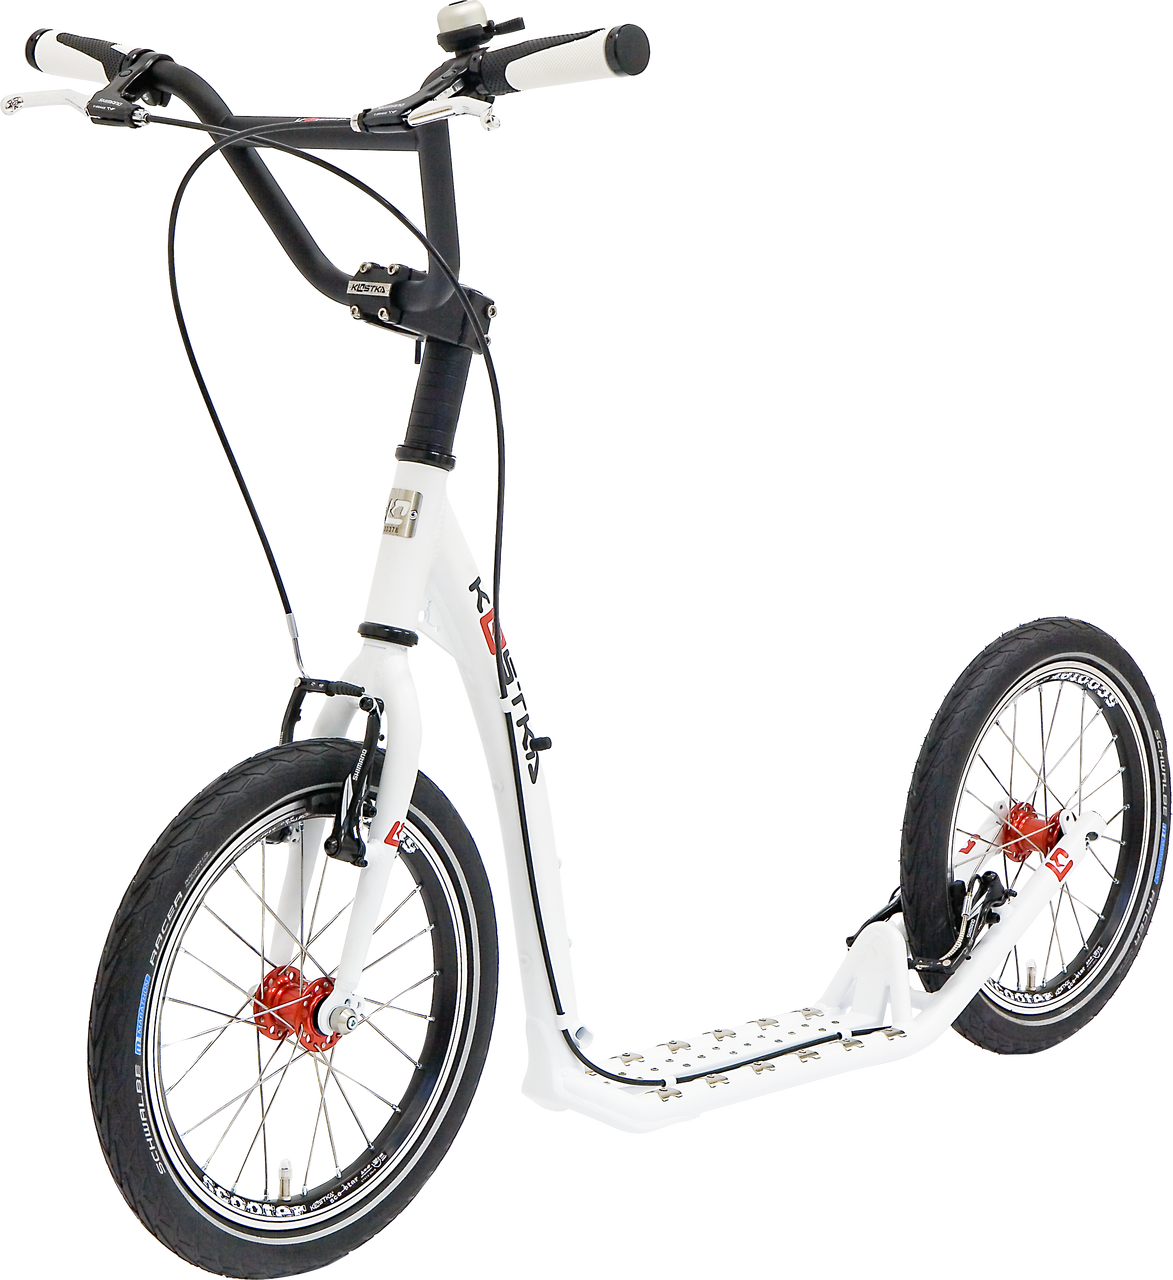 Free download of Kick Scooter Transparent PNG Image